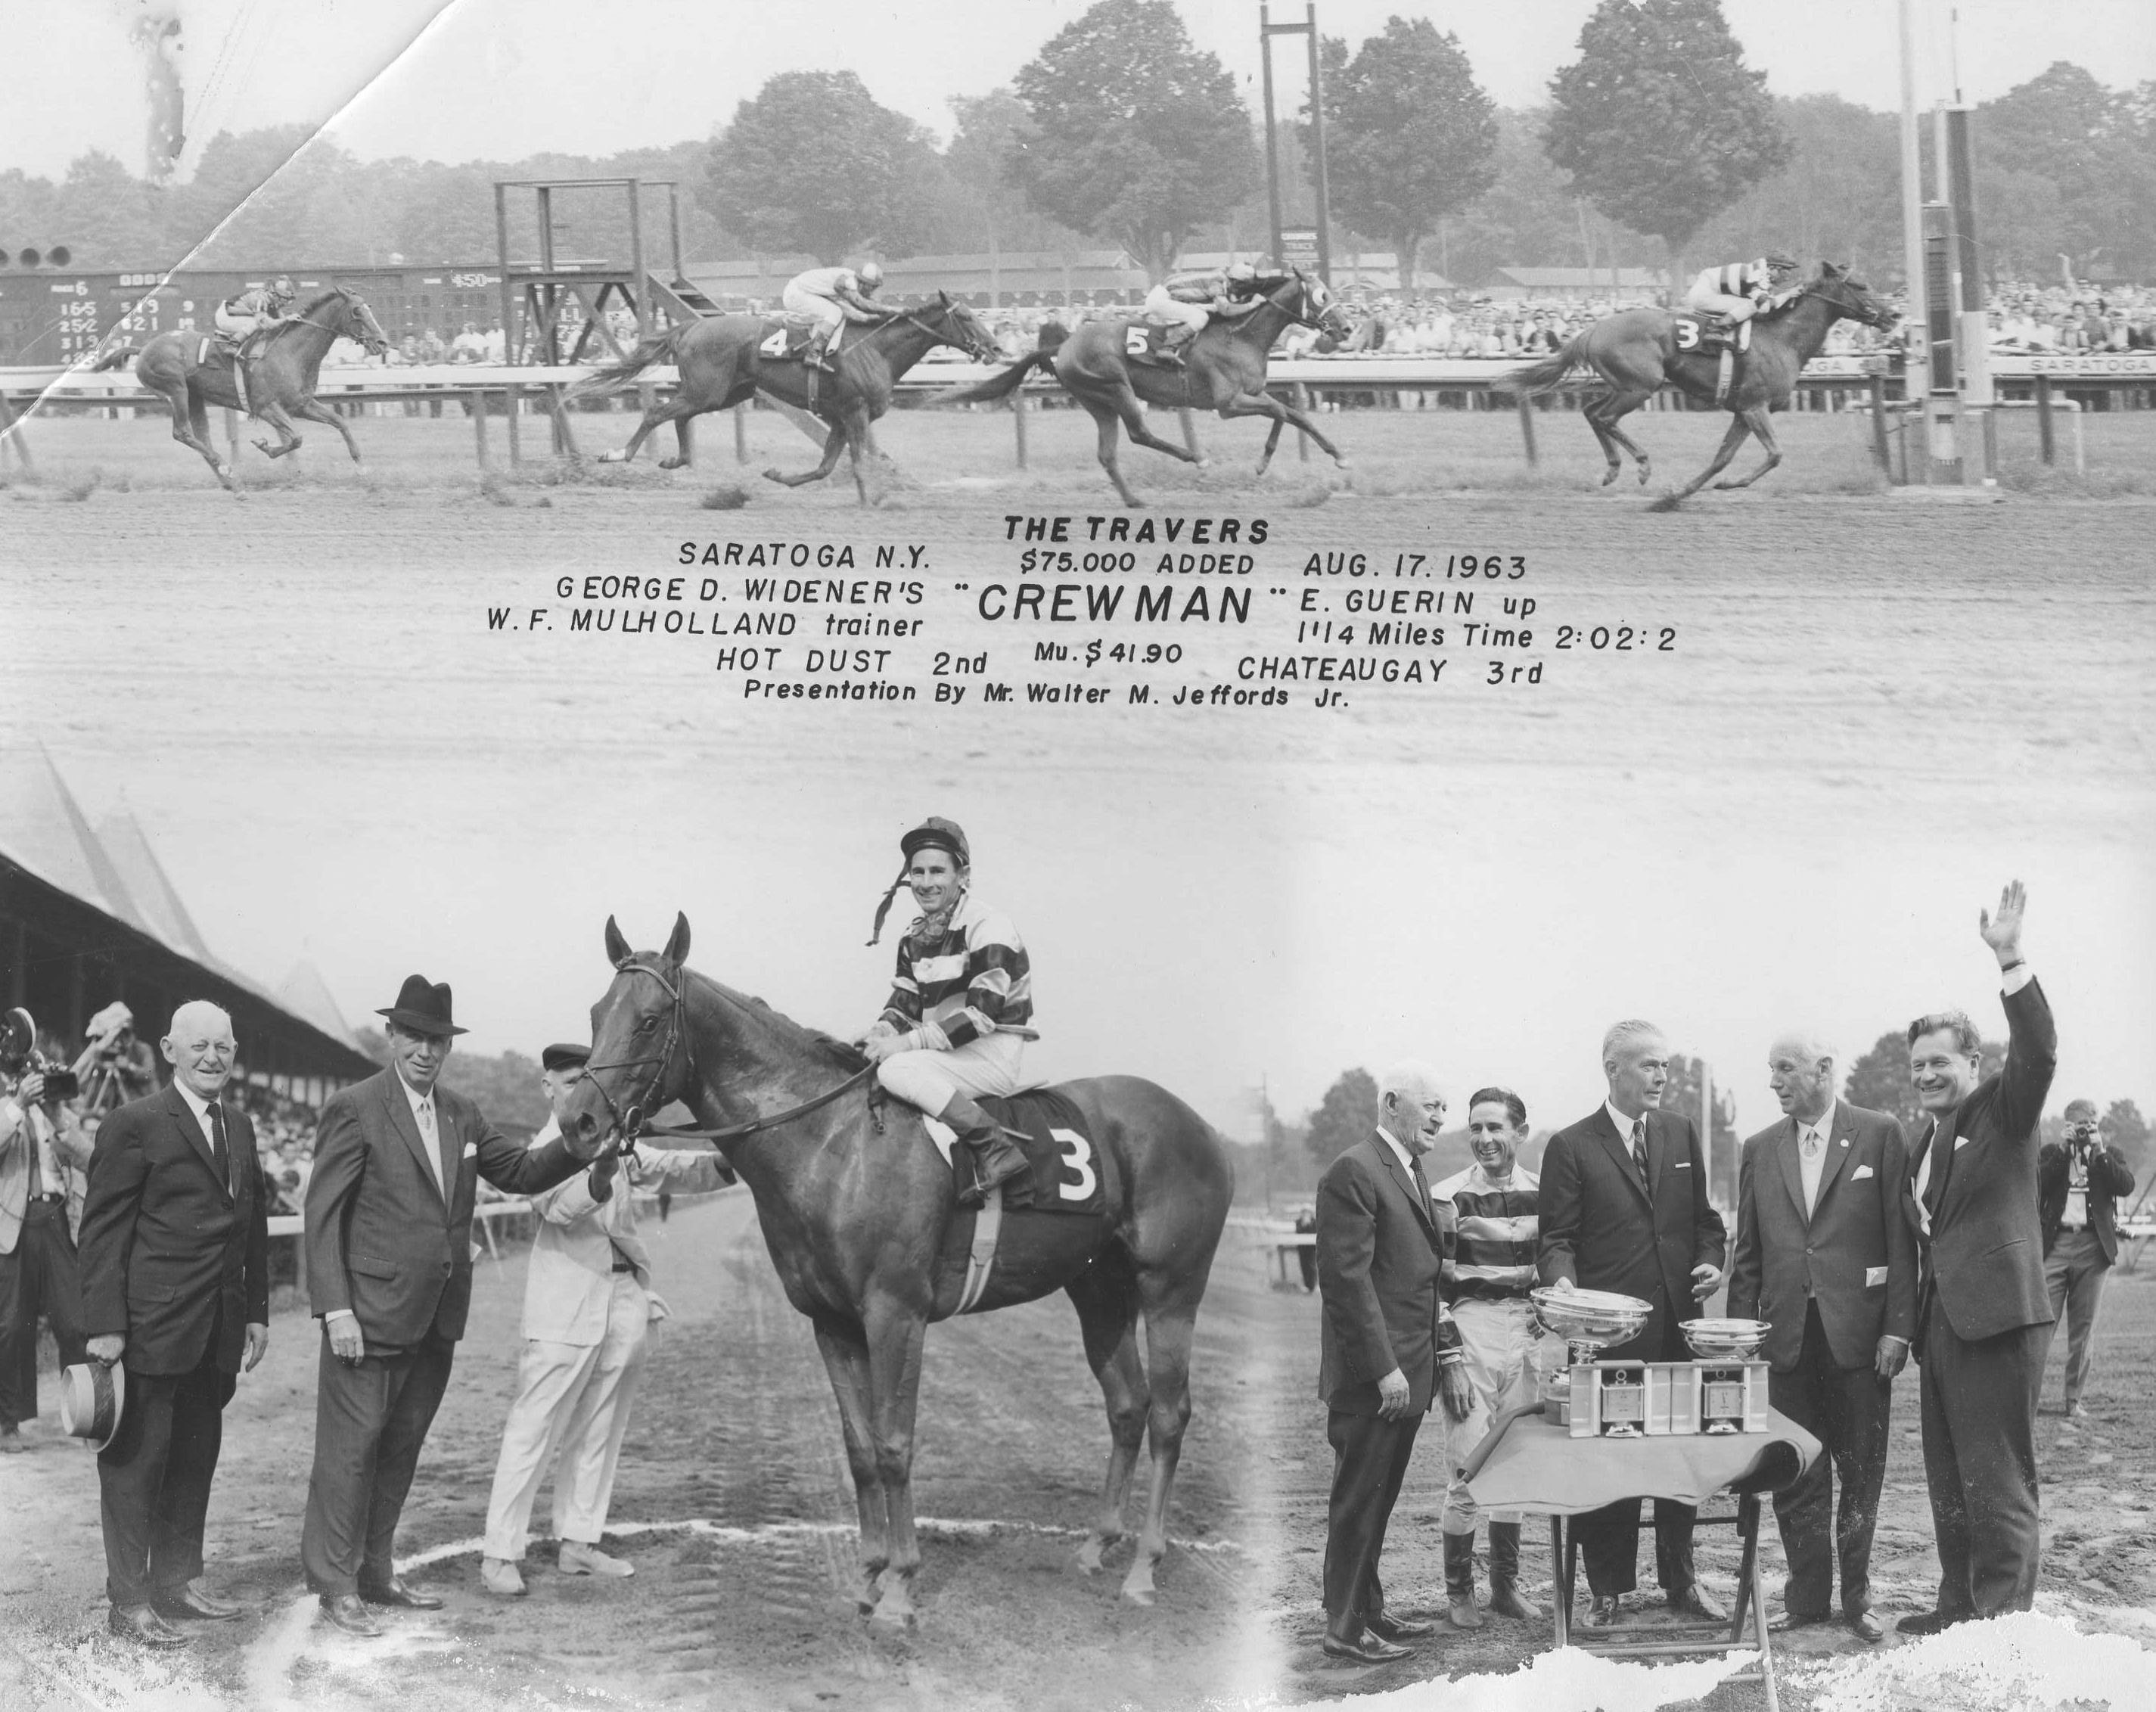 Win composite photograph for the 1963 Travers Stakes at Saratoga, won by Crewman with Eric Guerin up (NYRA/Museum Collection)